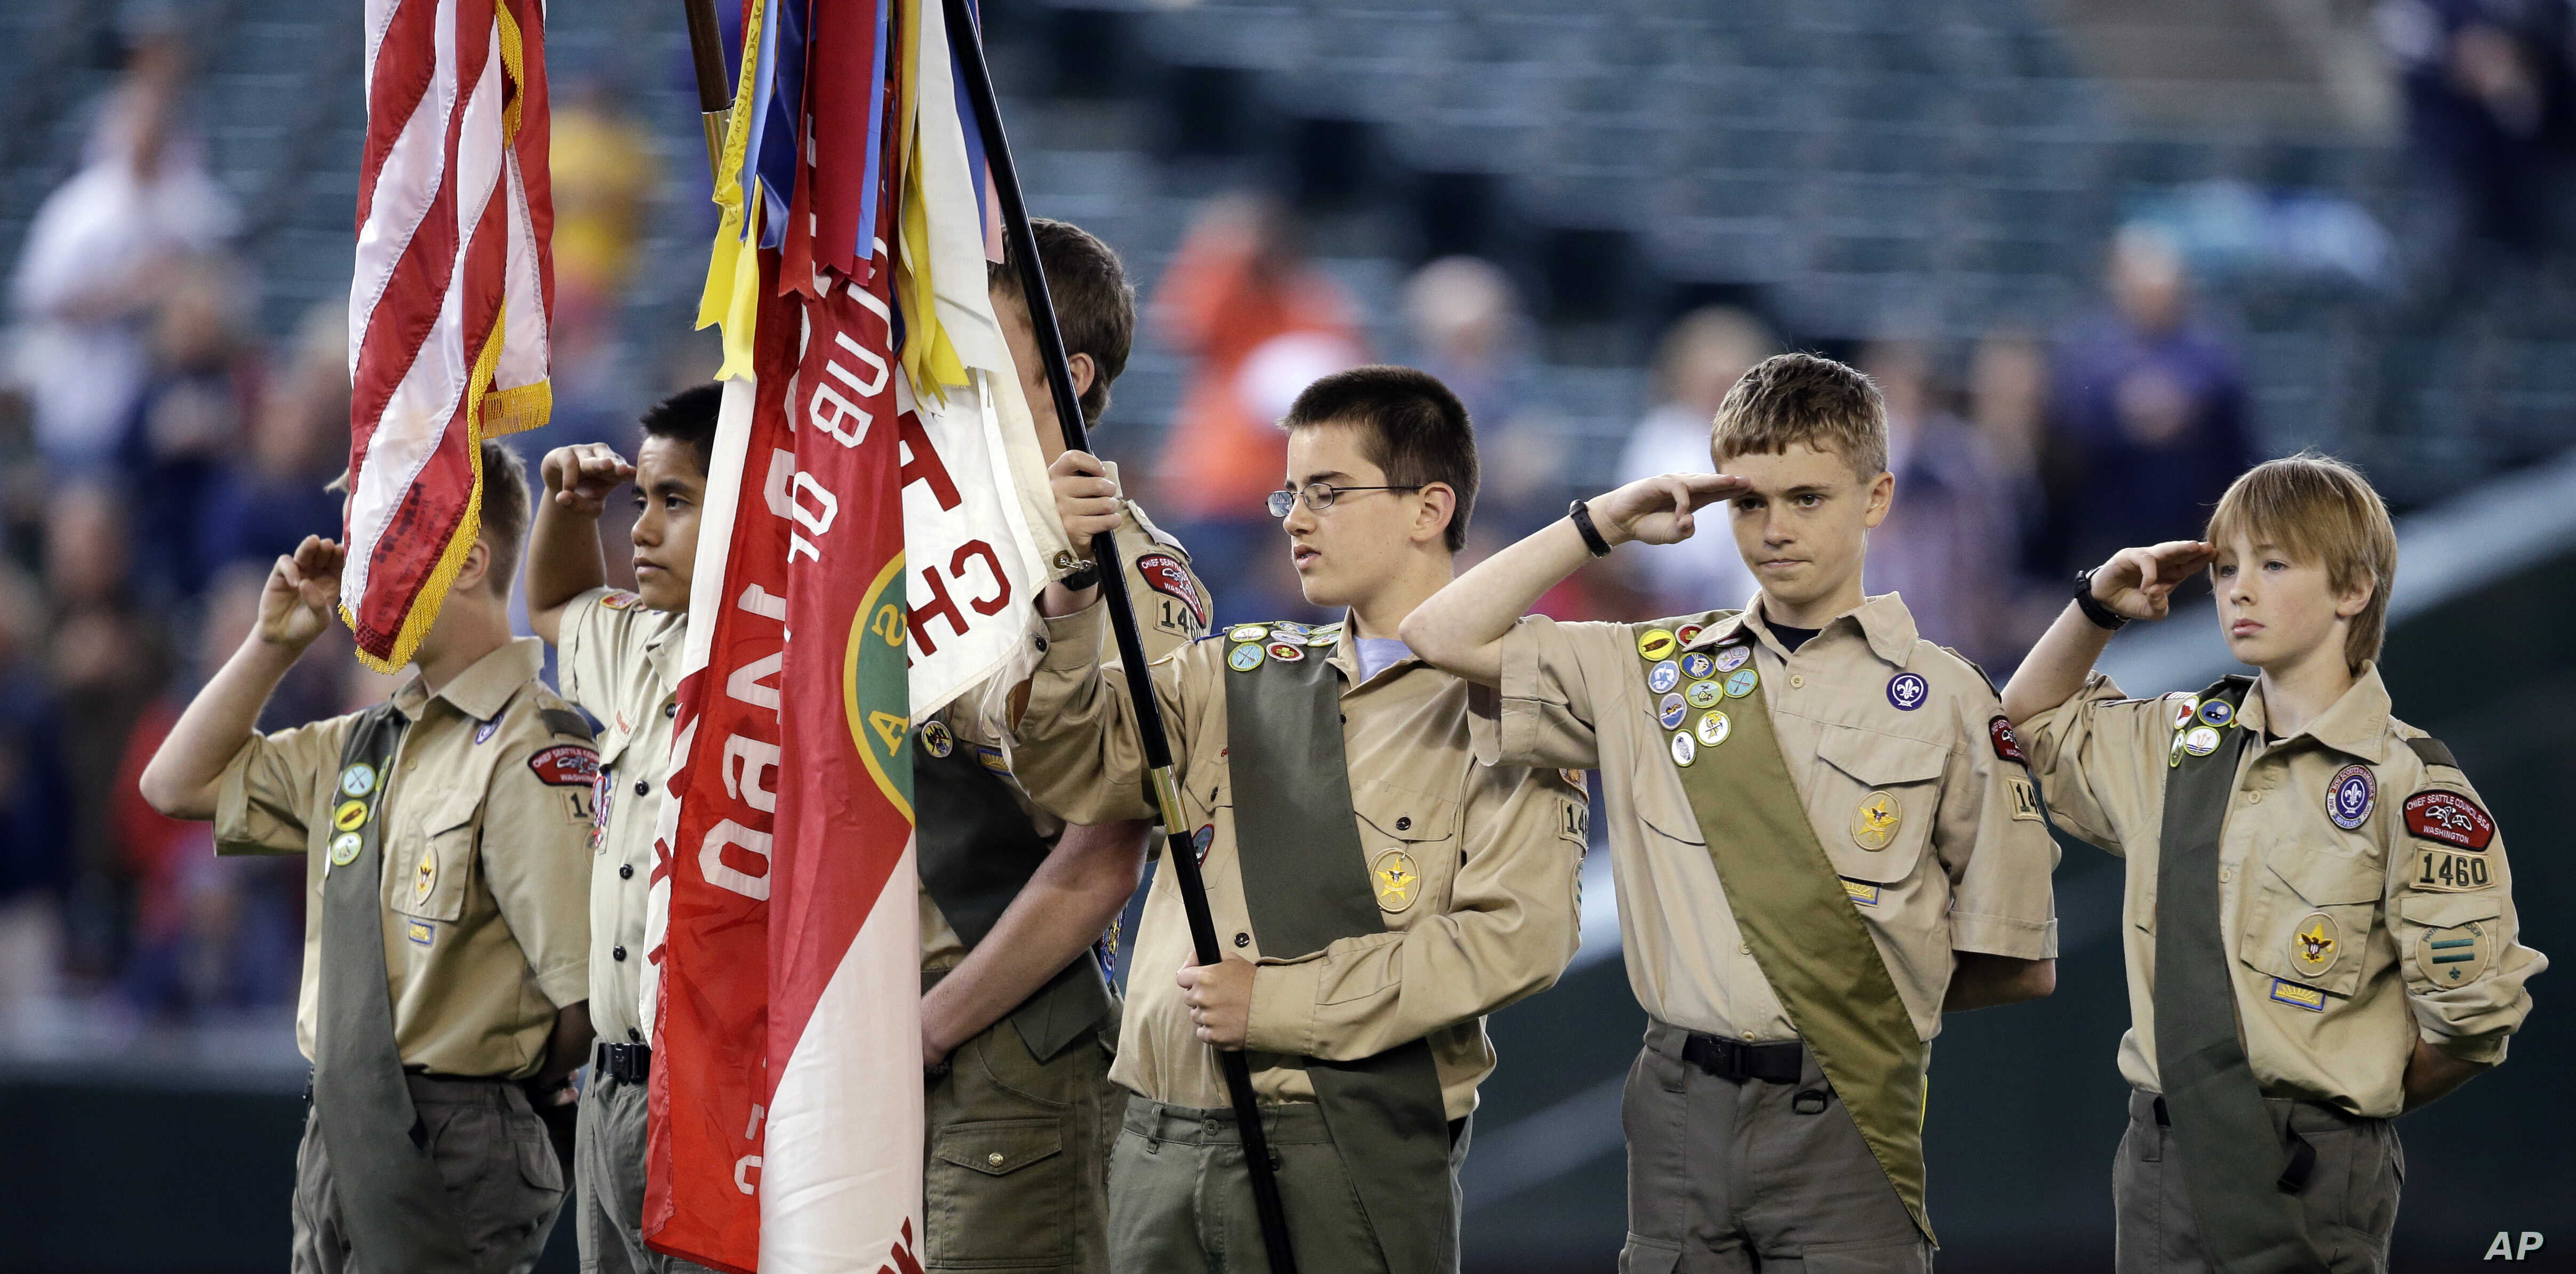 Accepting Girls a Welcome Change in Boy Scouts of America